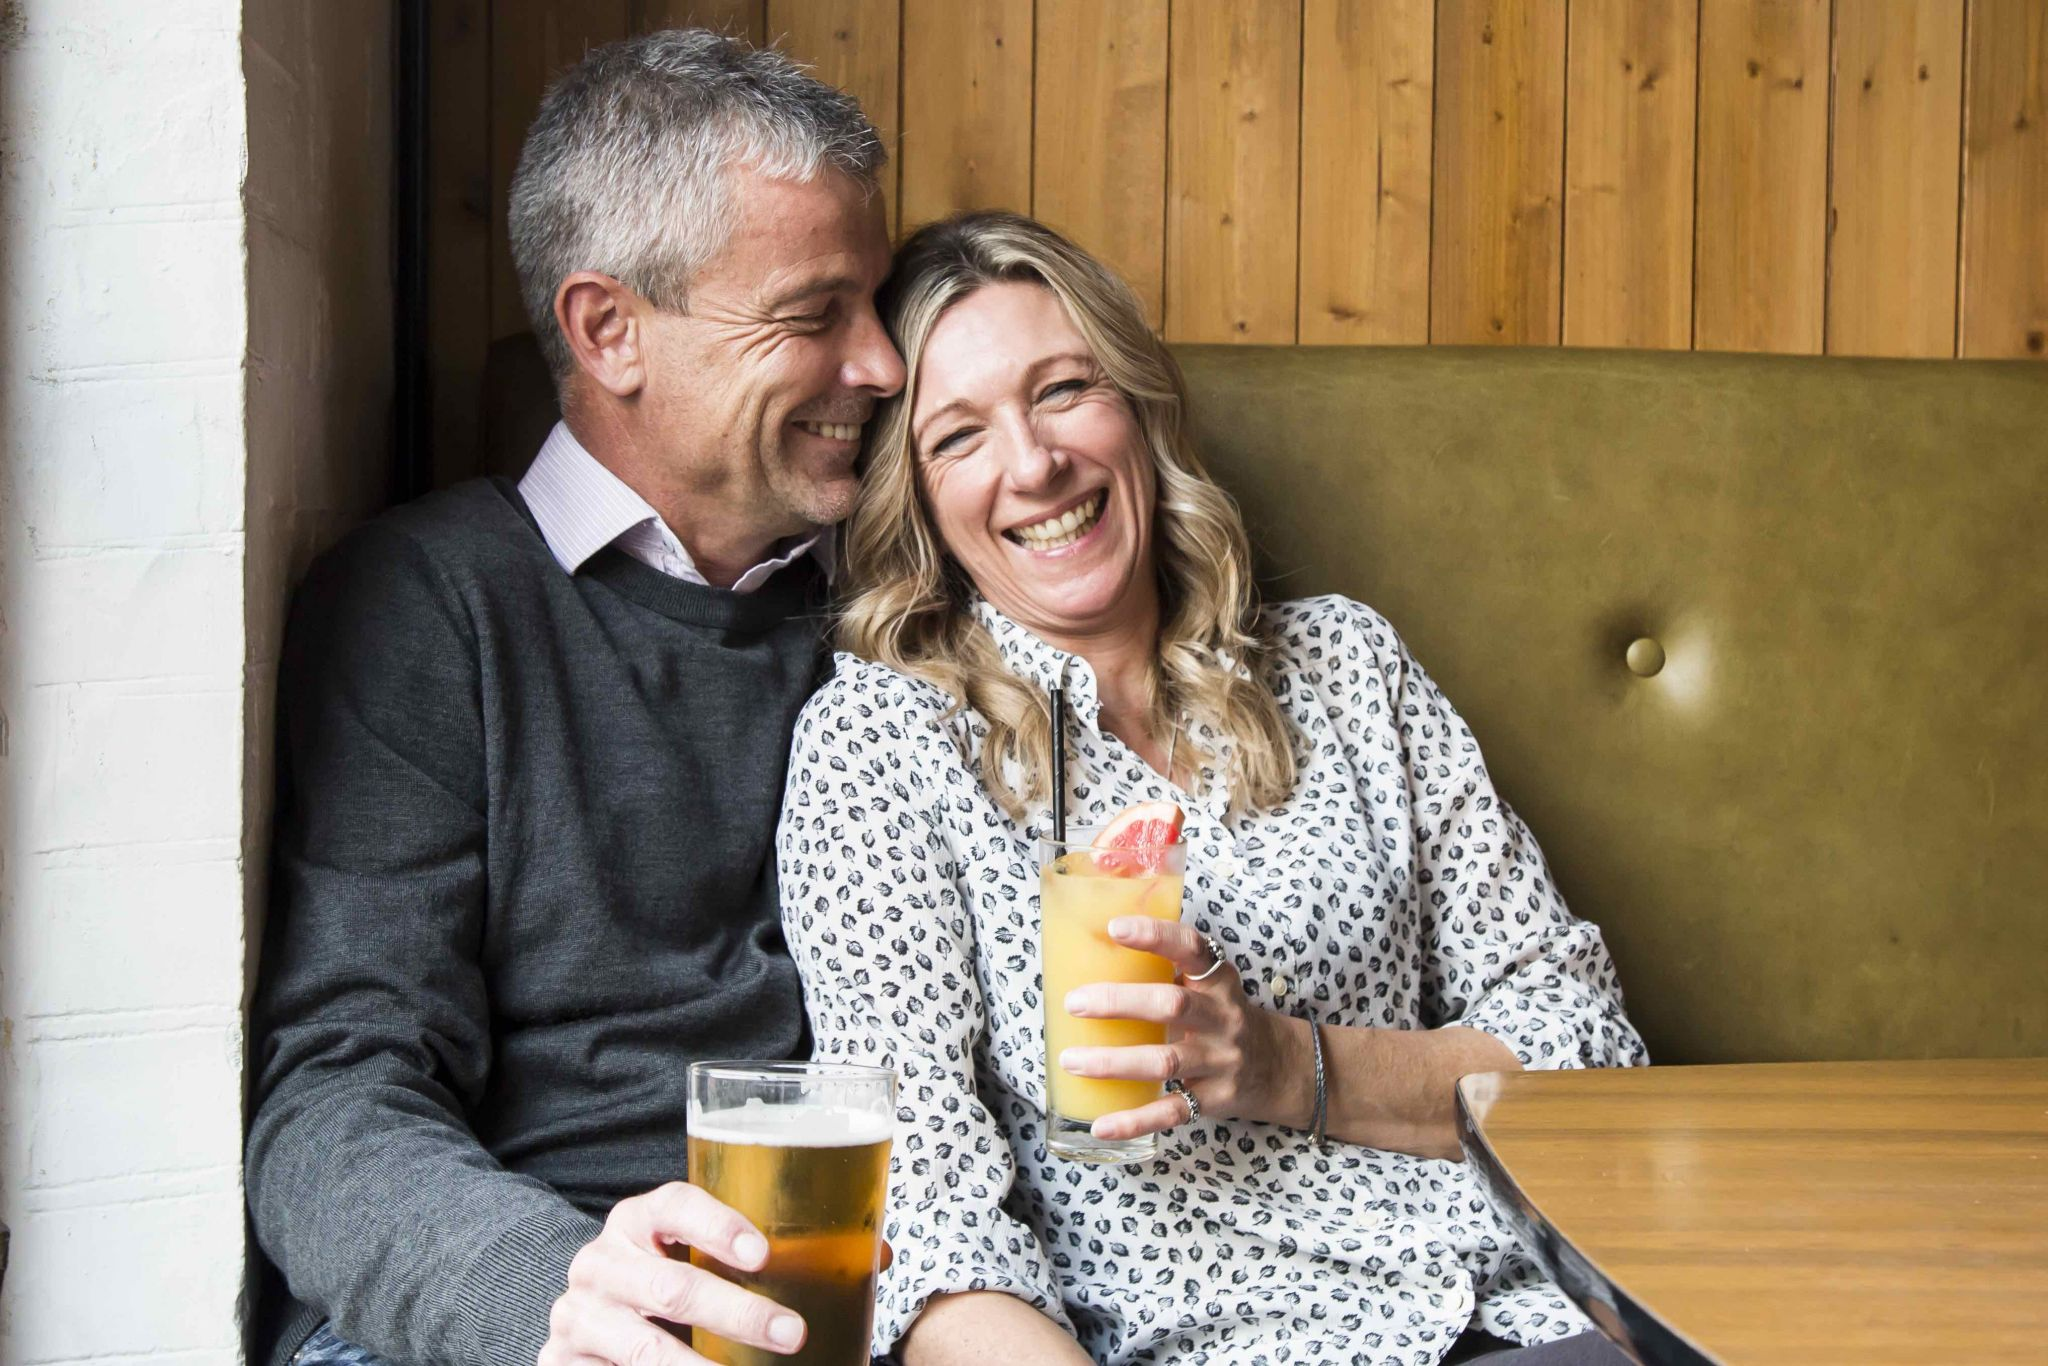 Looking for love over 50? Here's a nre dating App perfect for us over 50's